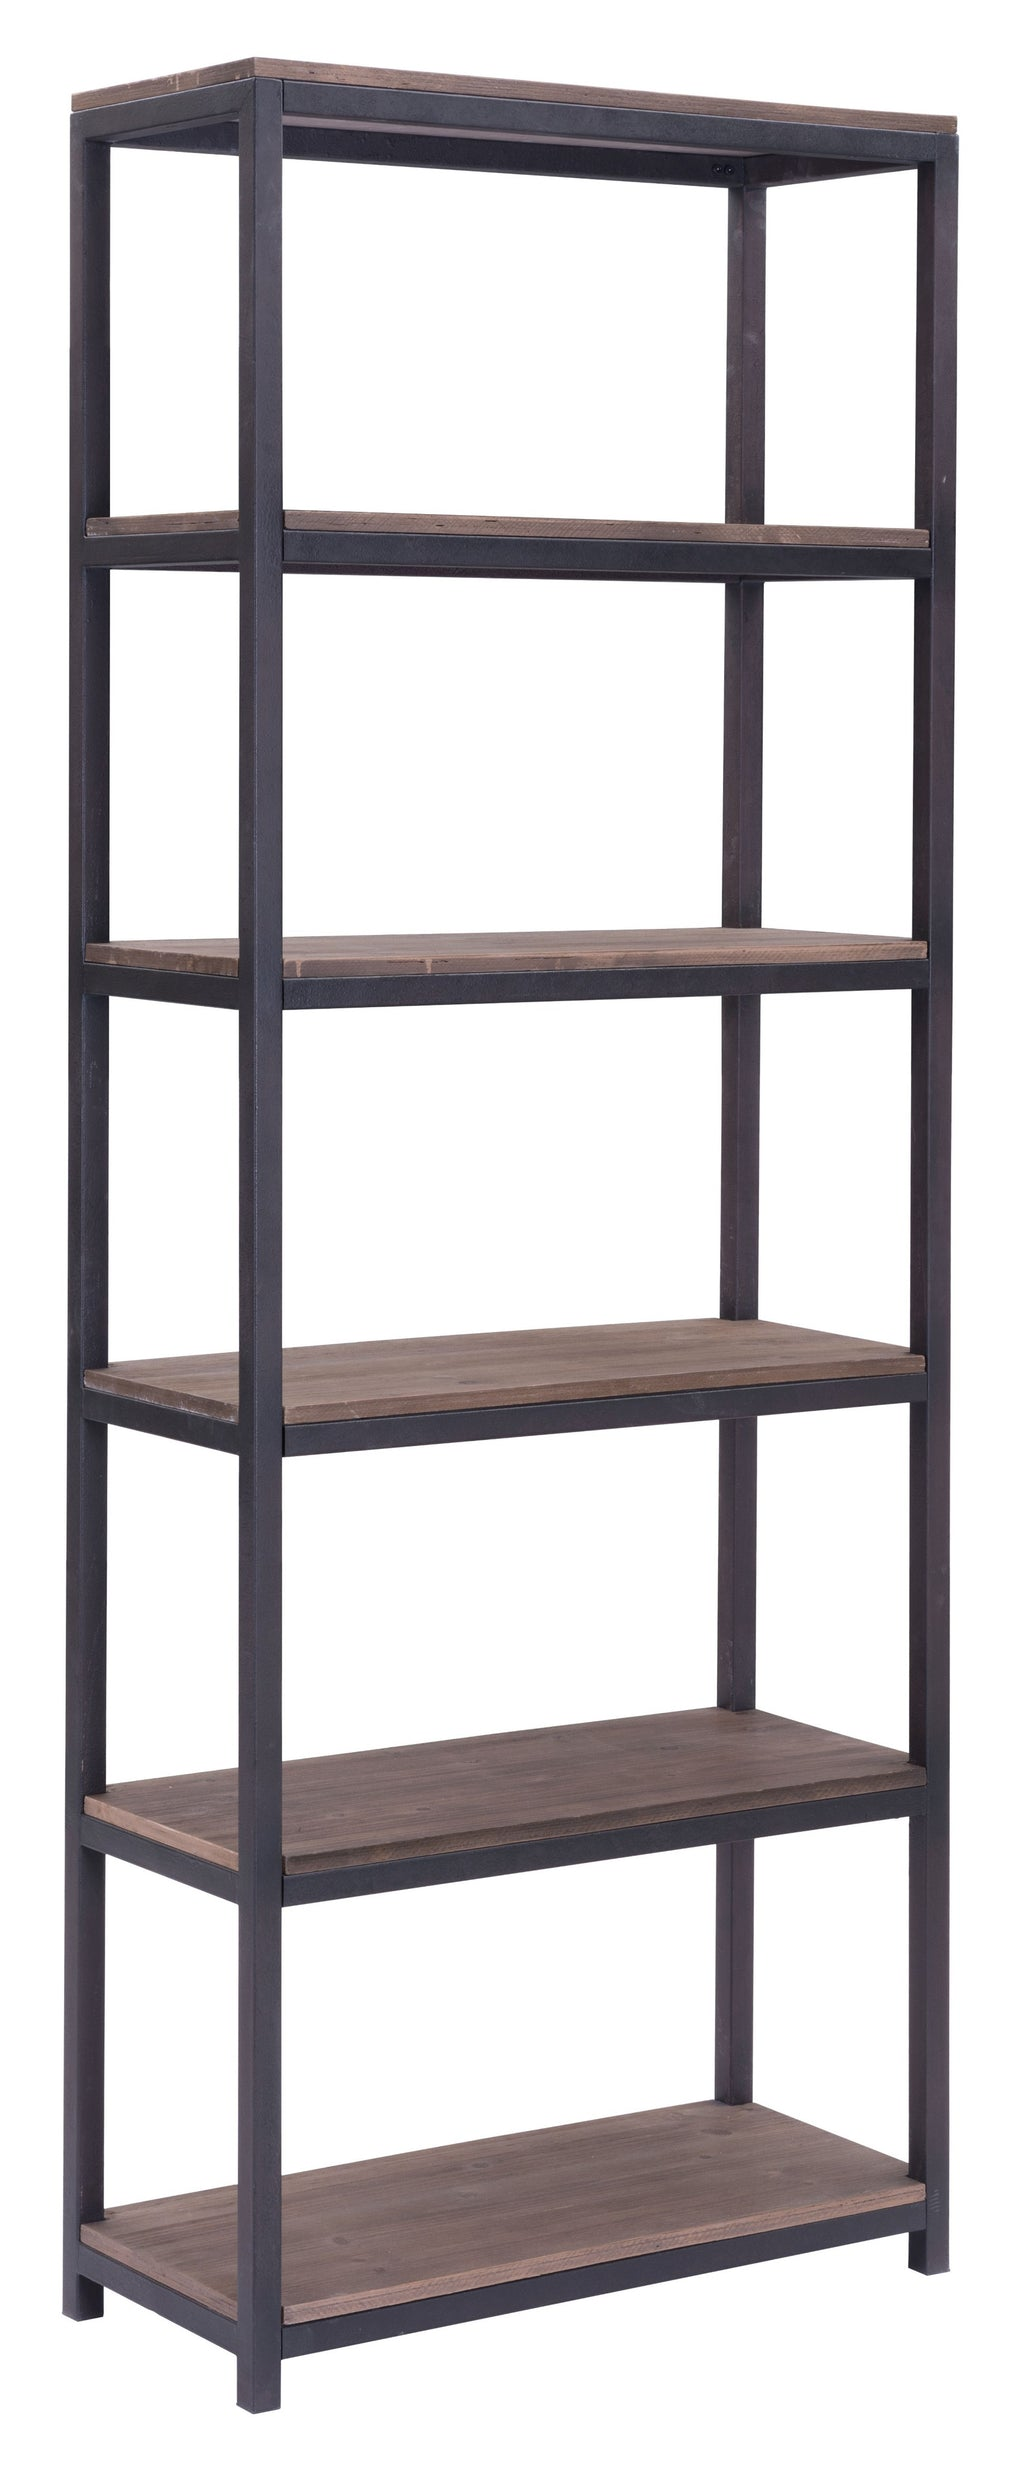 Mission Bay Tall 6 Level Shelf (Distressed Natural)